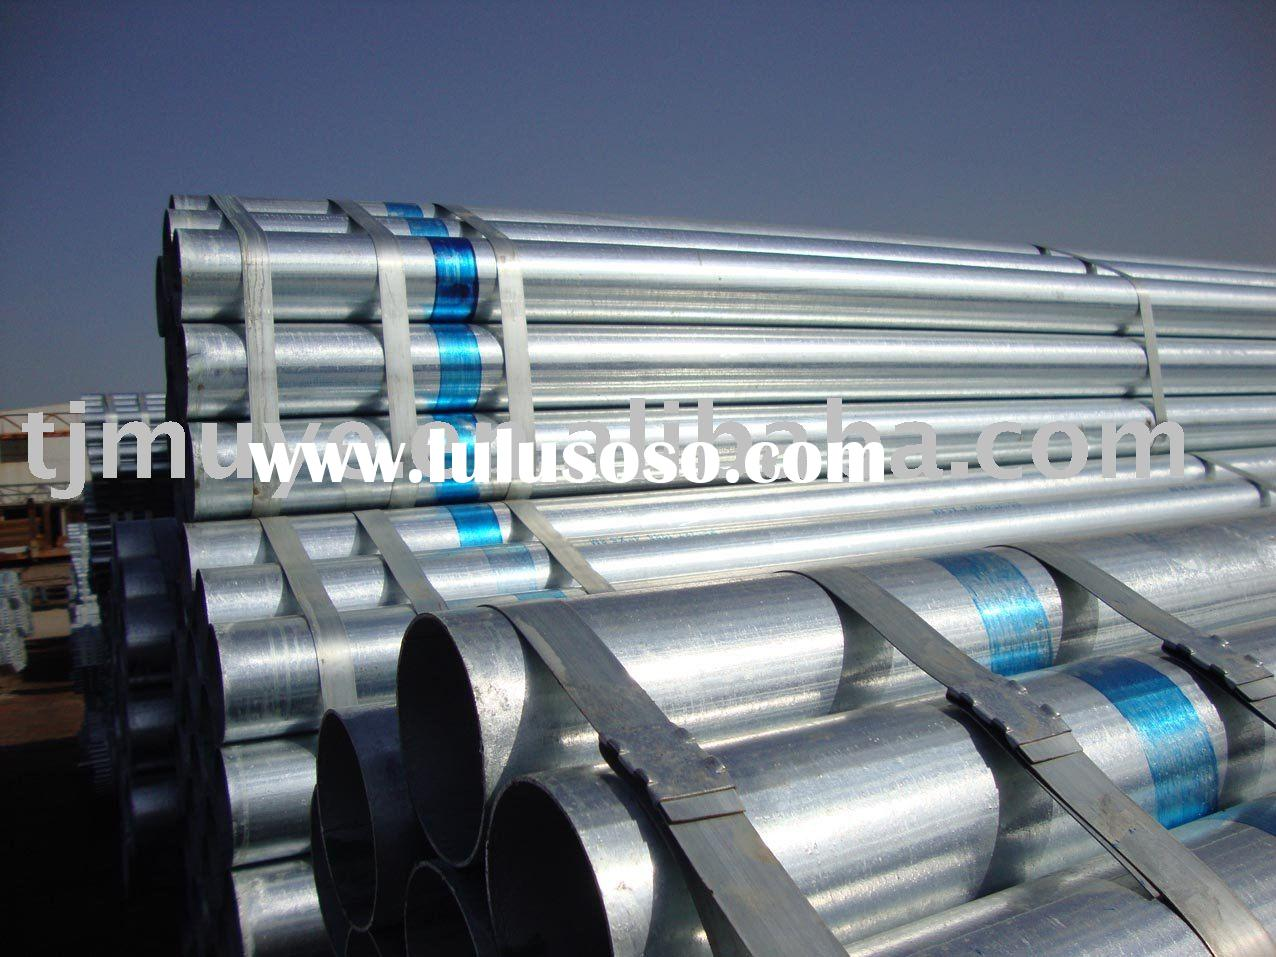 Galvanized steel pipe & tubing, PVC coated pipe & tubing